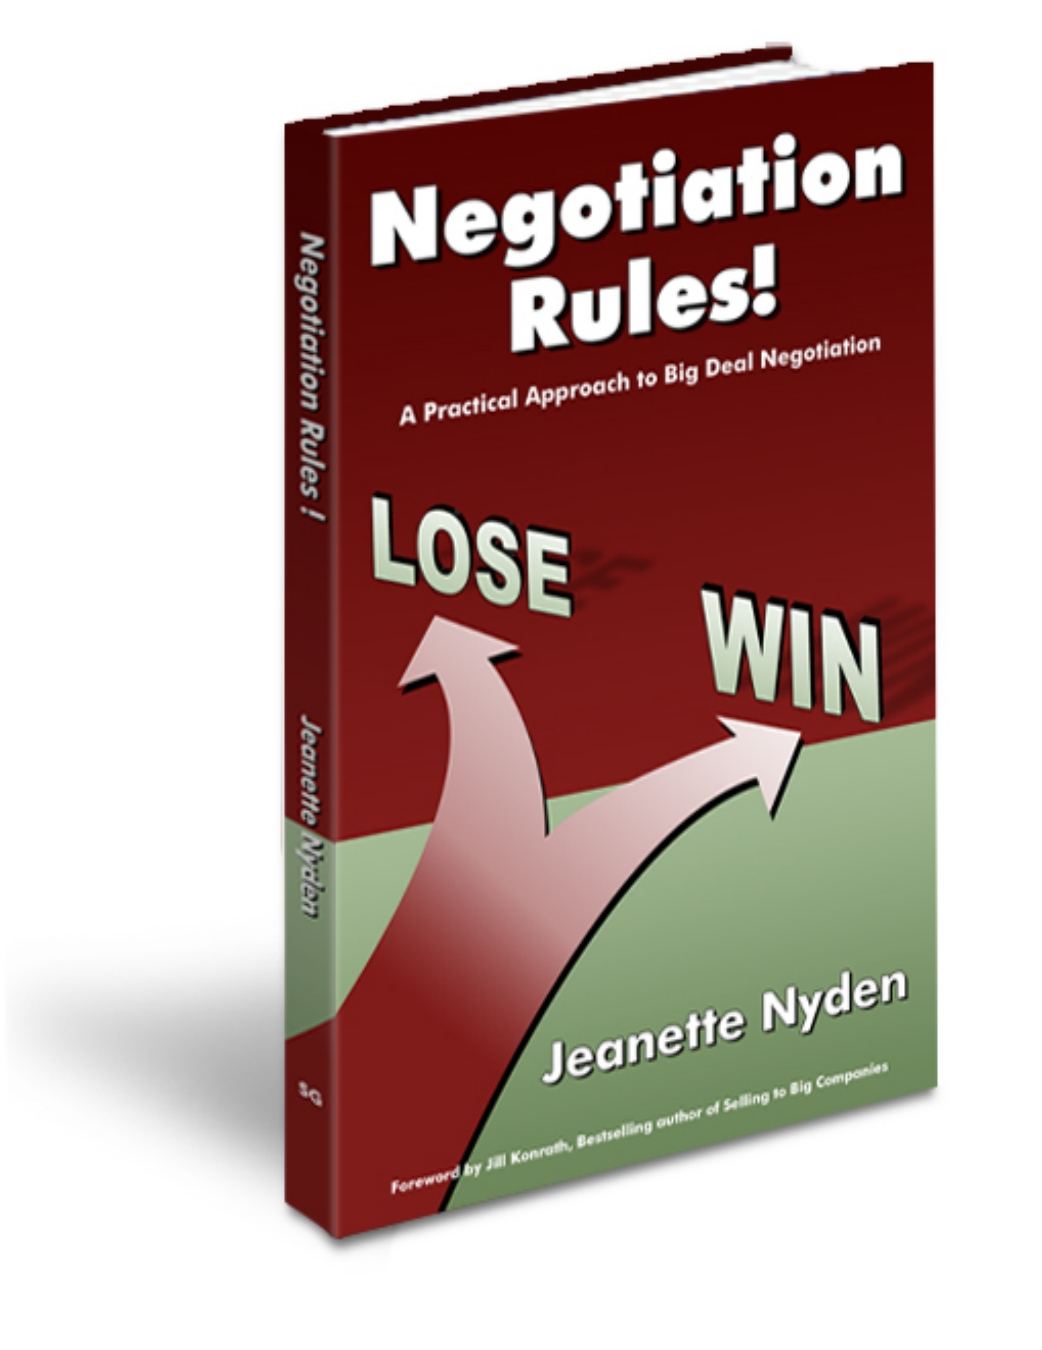 Negotiation Rules! A Practical Approach to Big Deal Negotiations